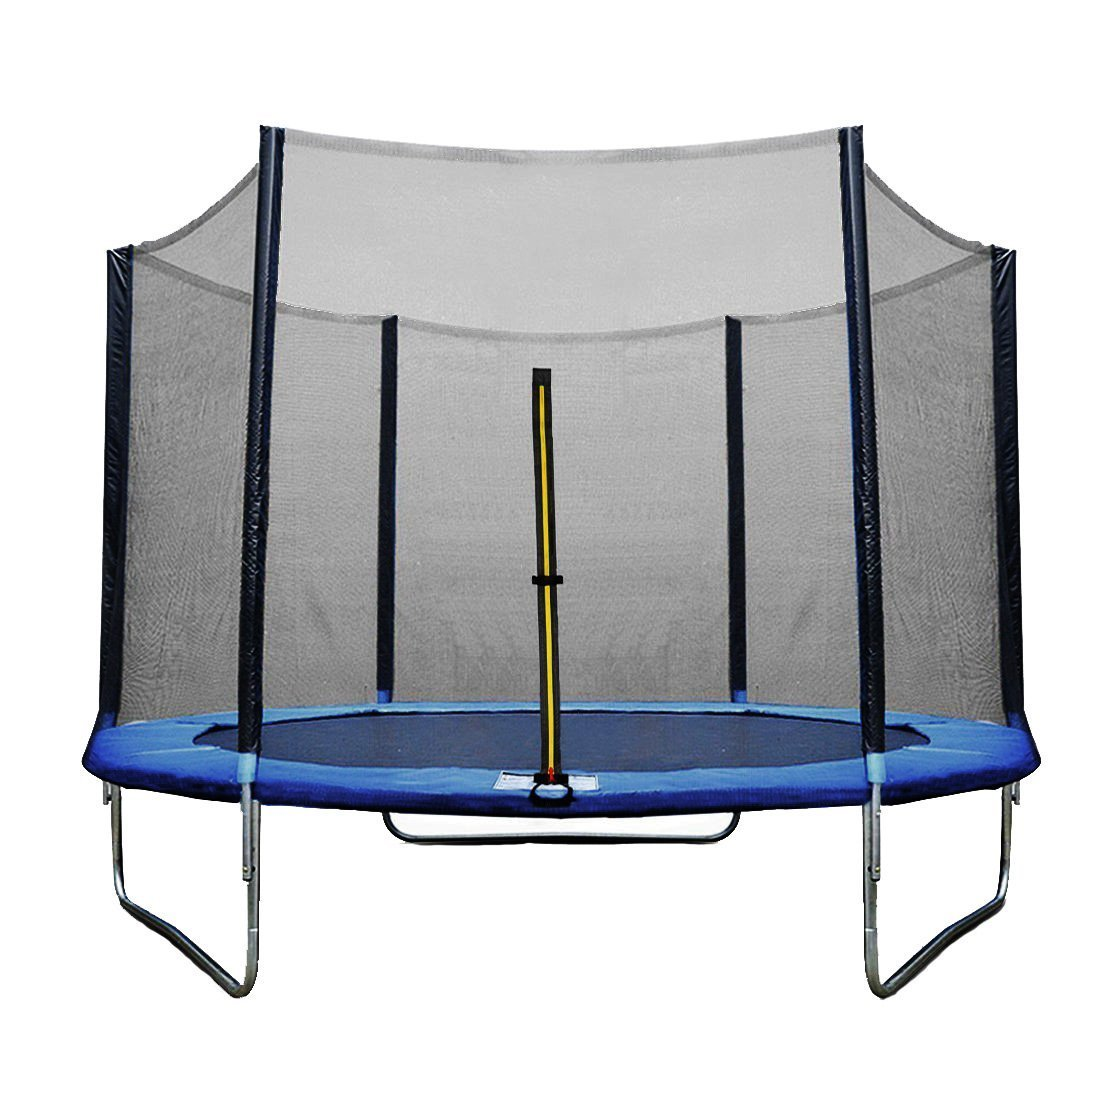 ULTRAPOWER Sports Trampoline 12Ft Replacement Safety Enclousure Net for 8 Straight Poles Round Frame Trampolines (Net Only)